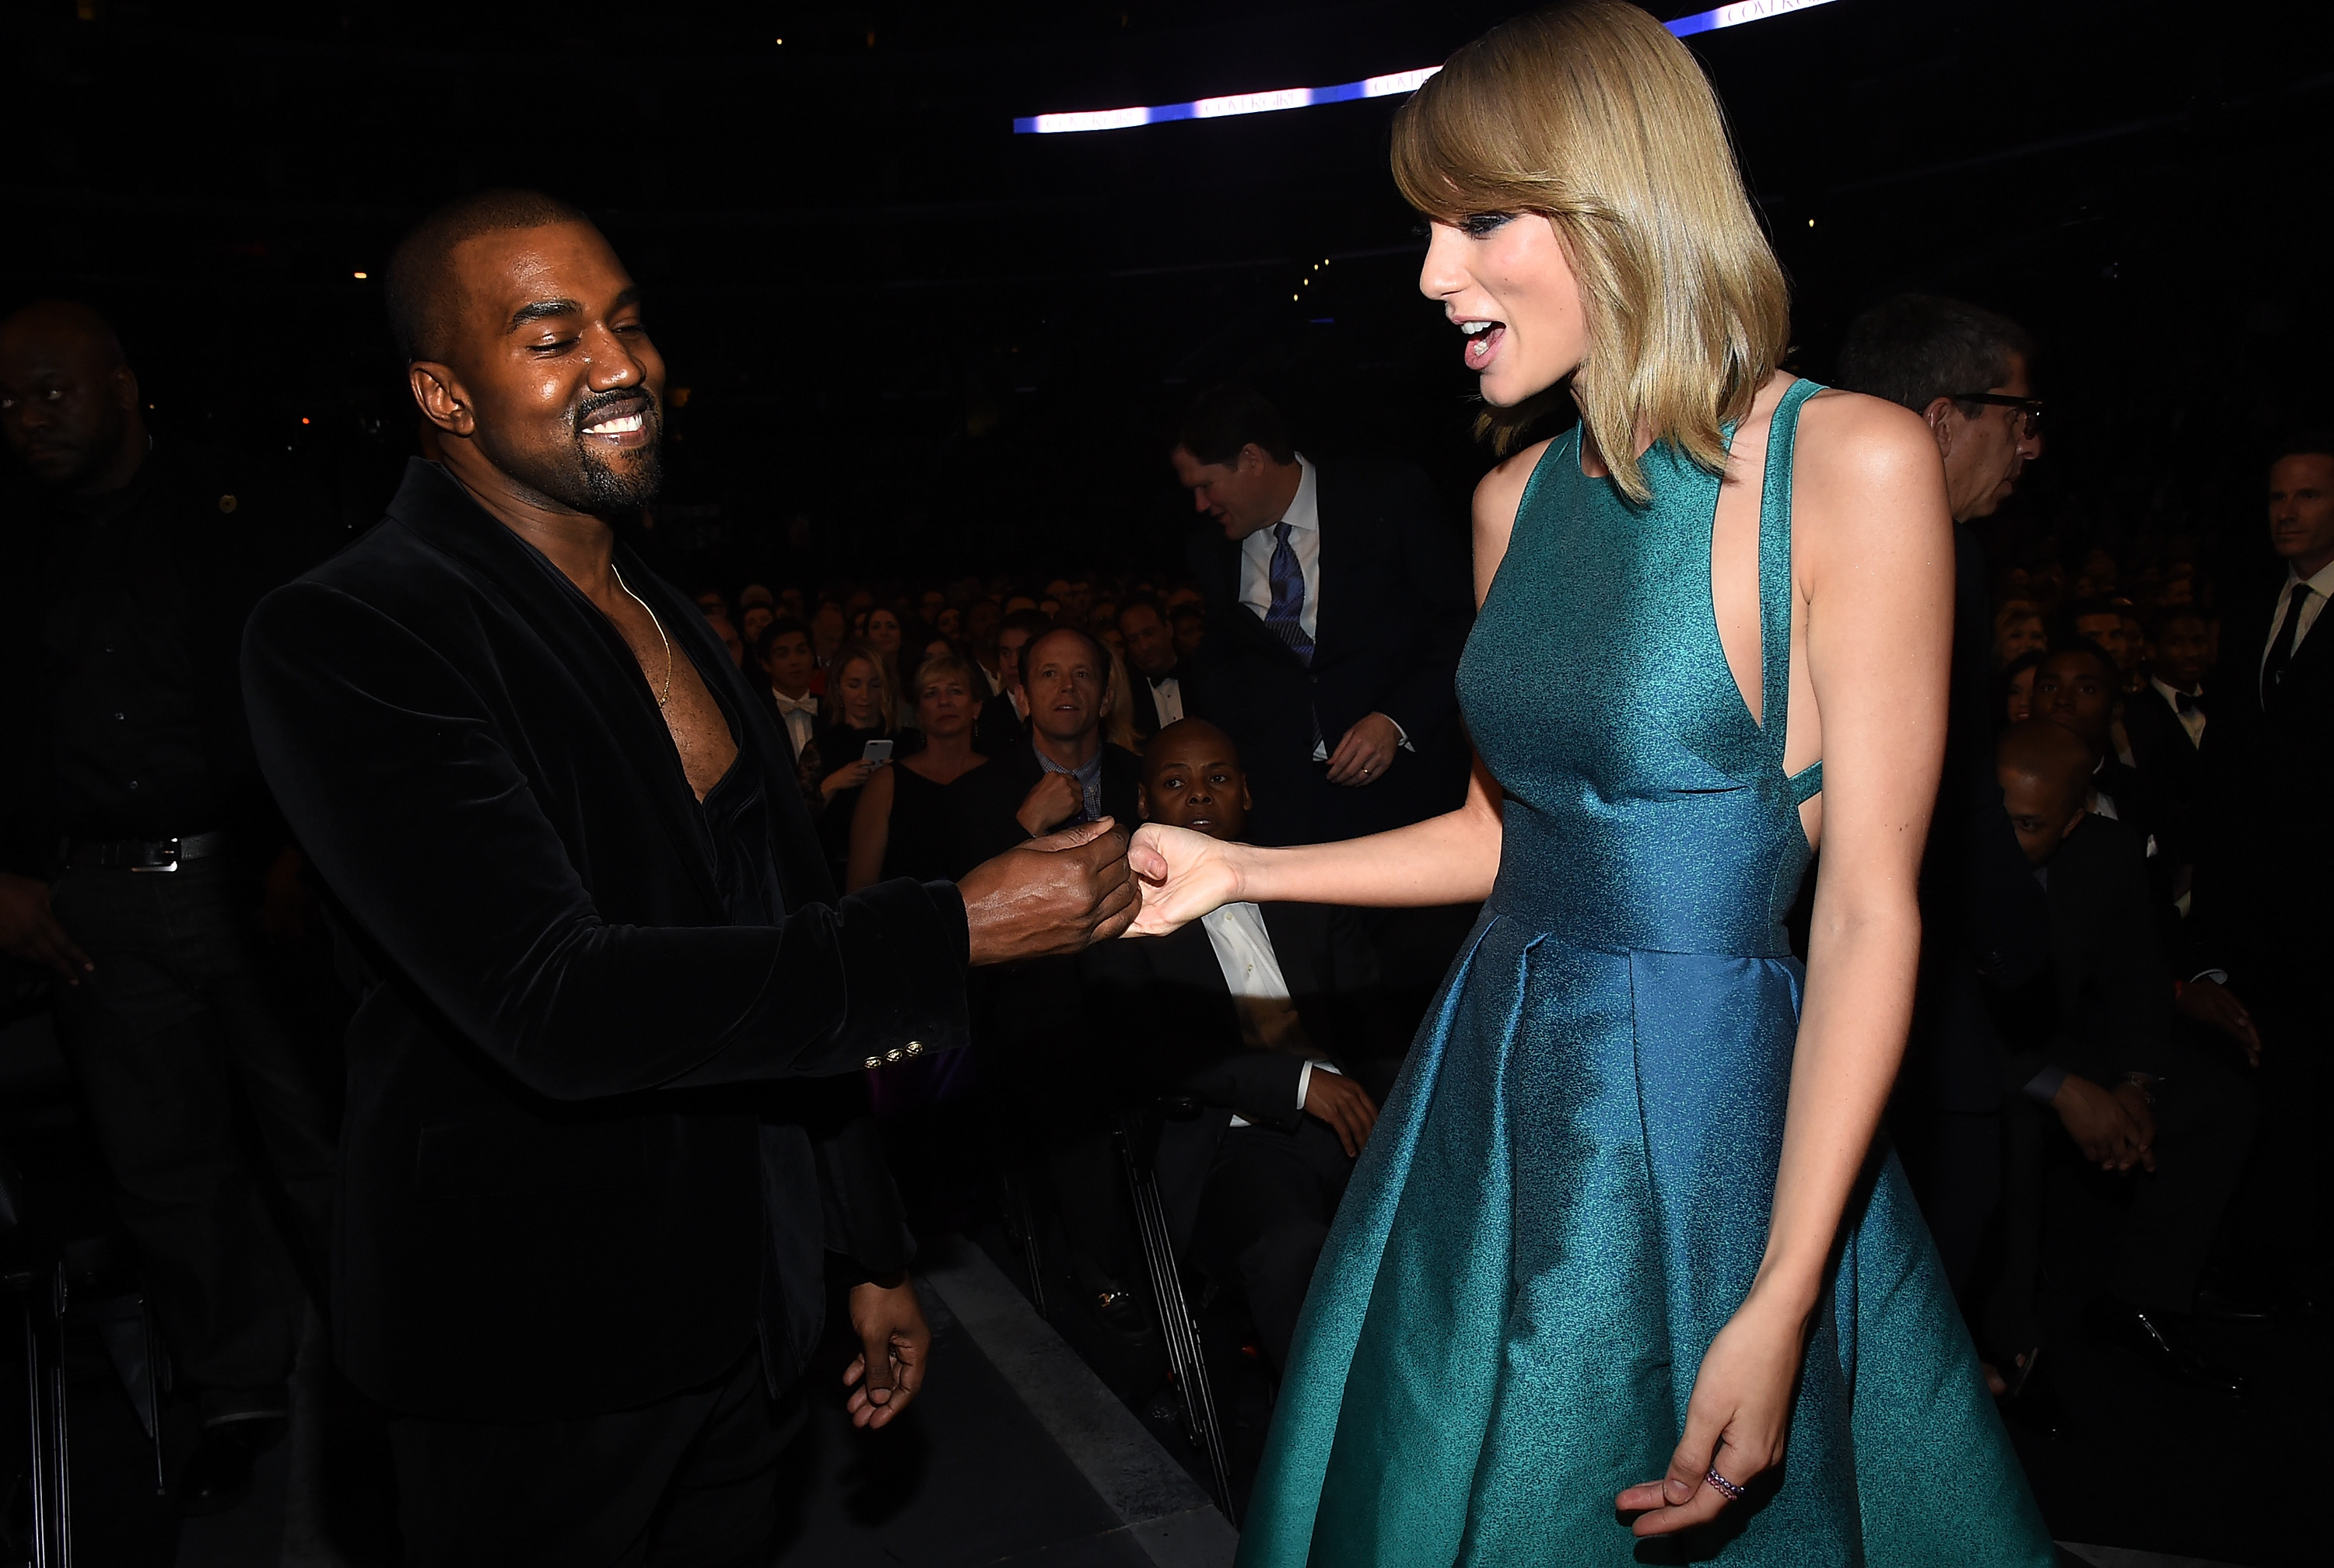 attends The 57th Annual GRAMMY Awards at the STAPLES Center on February 8, 2015 in Los Angeles, California.